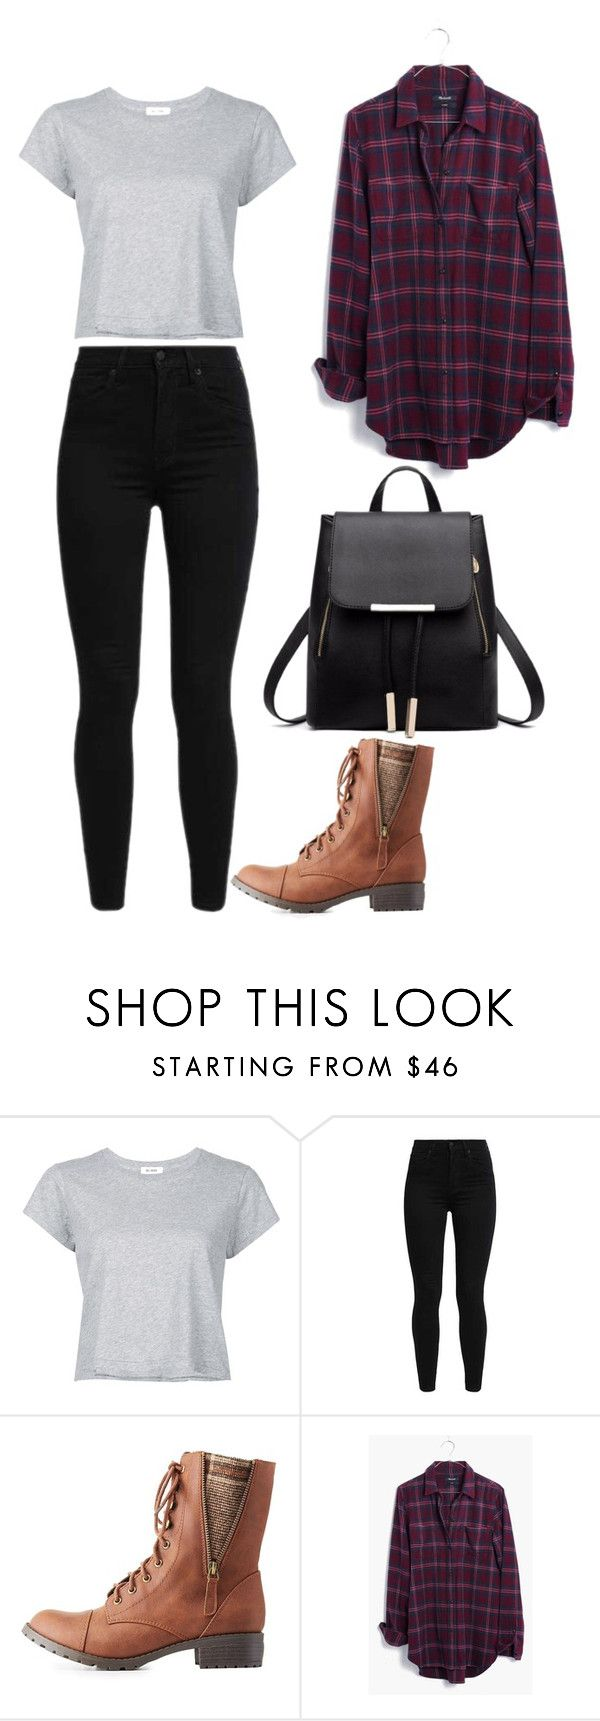 """""""Country Casual"""" by ifrancesconi on Polyvore featuring RE/DONE, Levi's, Charlotte Russe, Madewell and country"""